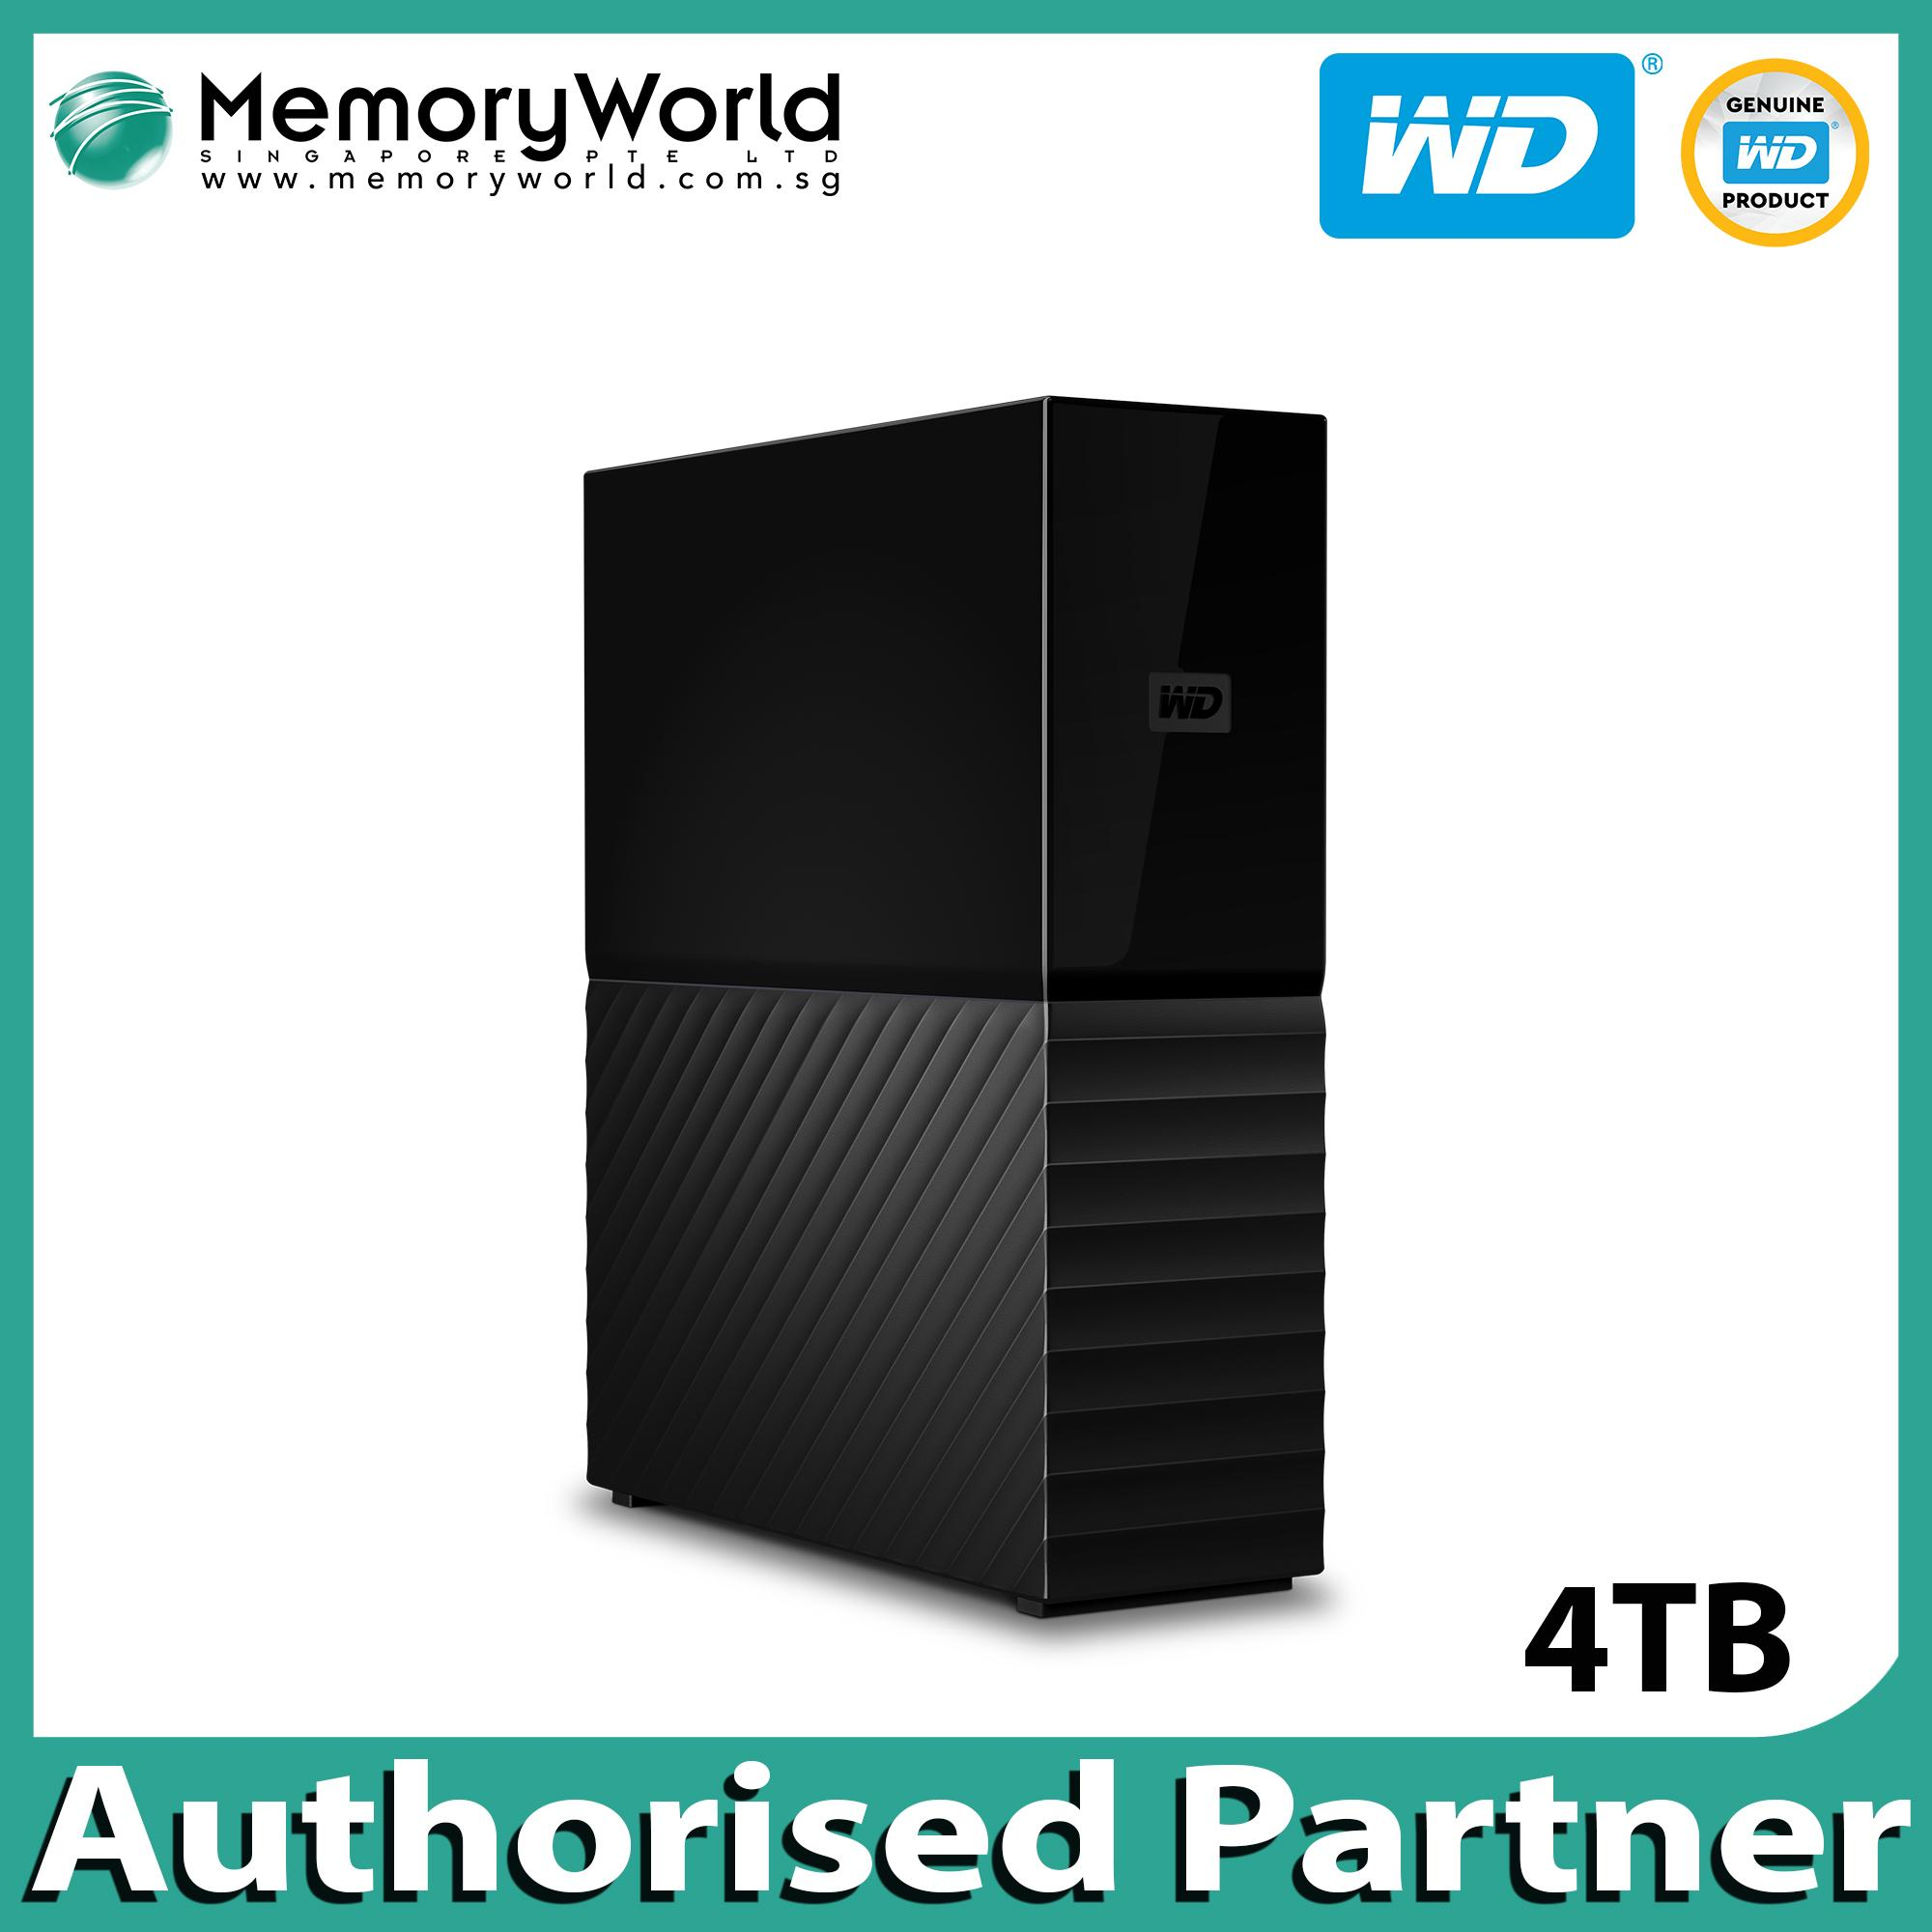 Latest Western Digital (WD) External Hard Drives Products